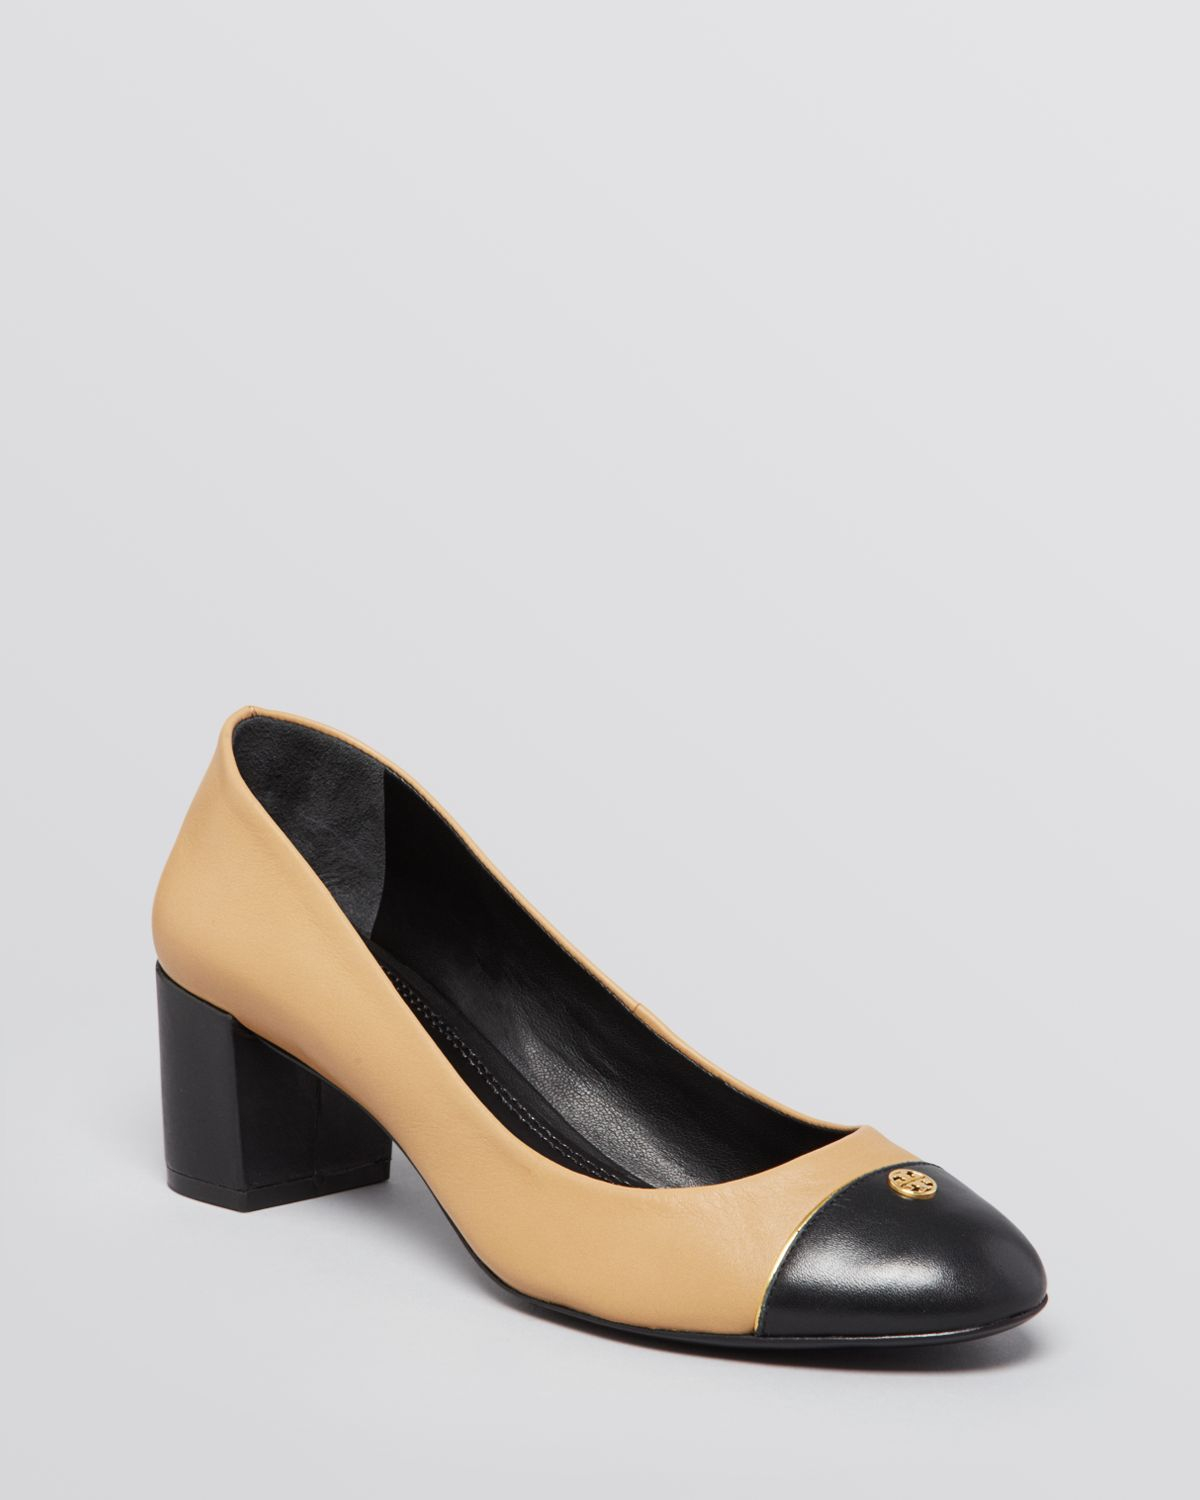 85b1b4f790a Lyst - Tory Burch Cap Toe Pumps Ethyl Block Heel in Black